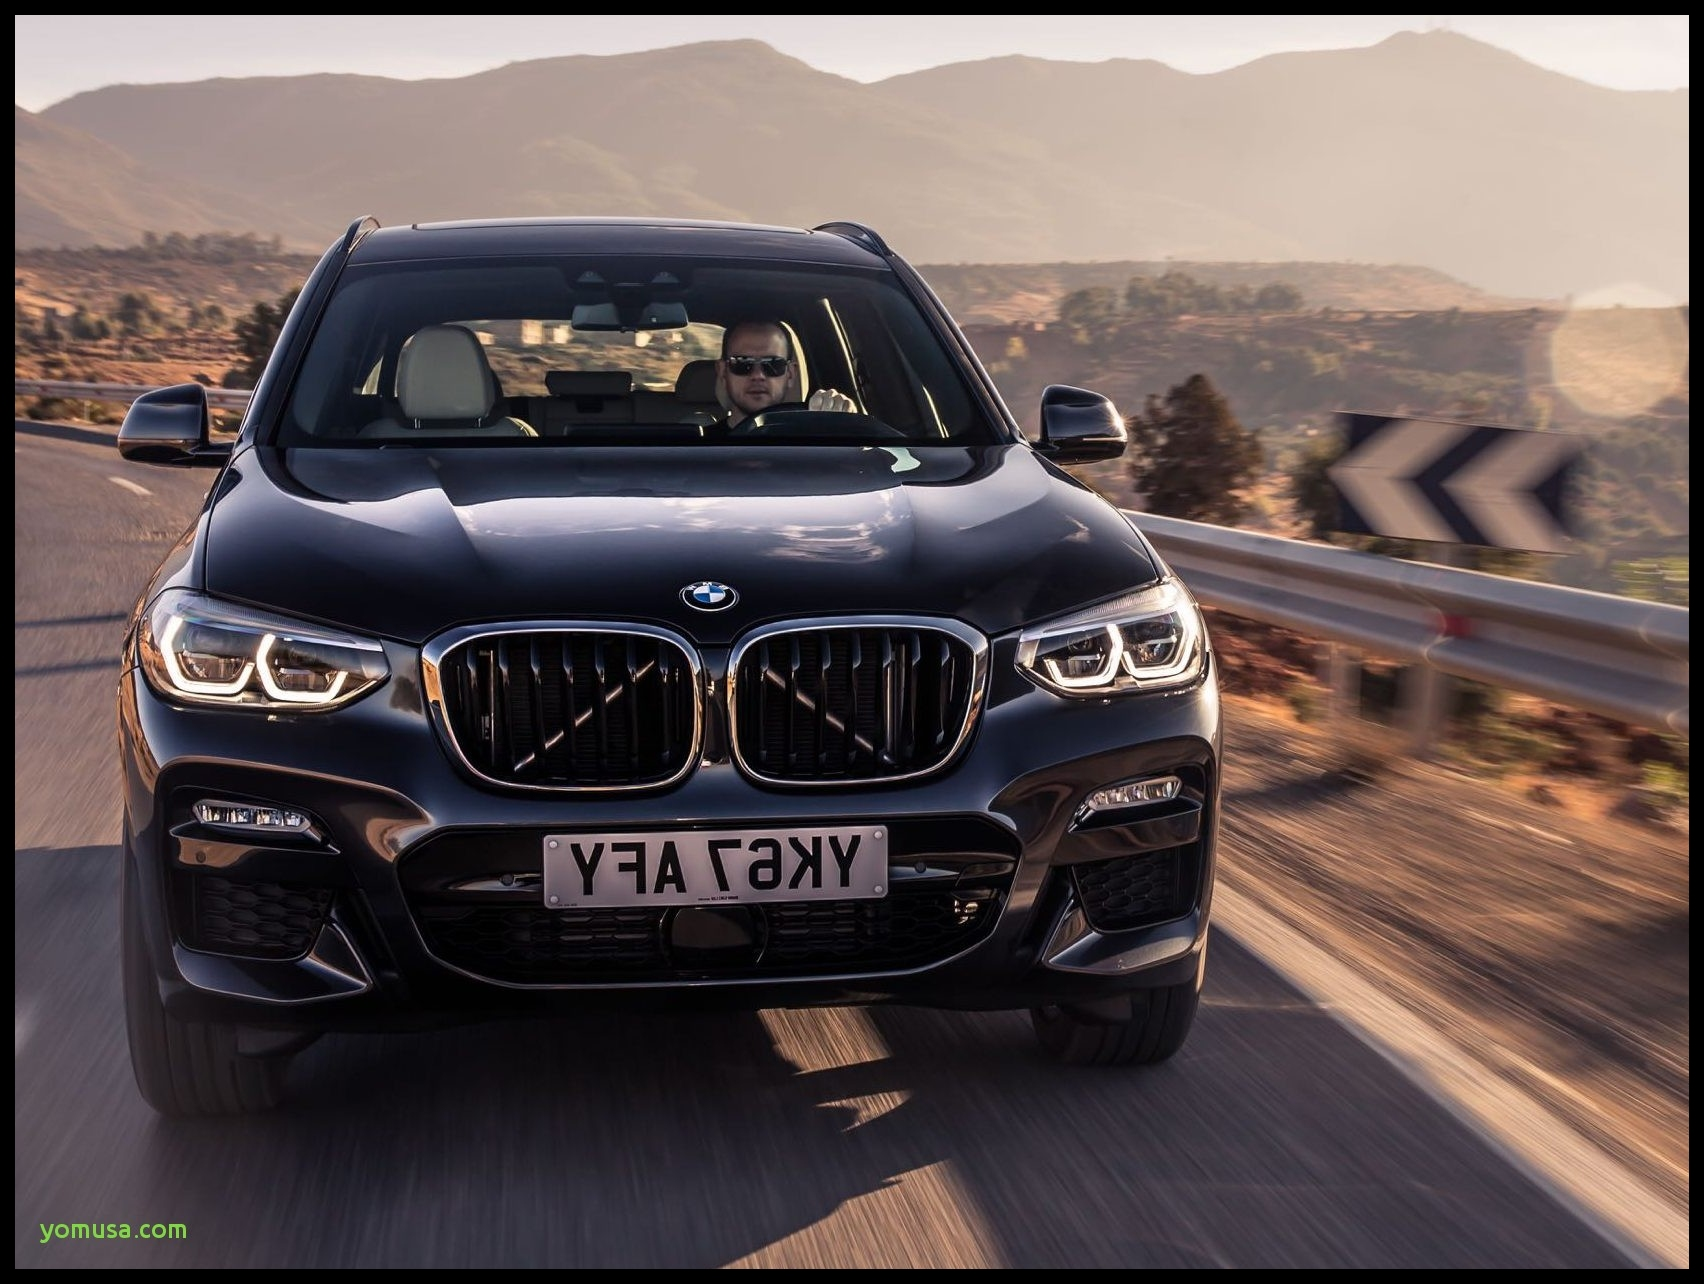 The BMW X3 has history and enduring desirability on its side in the immensely popular SUV